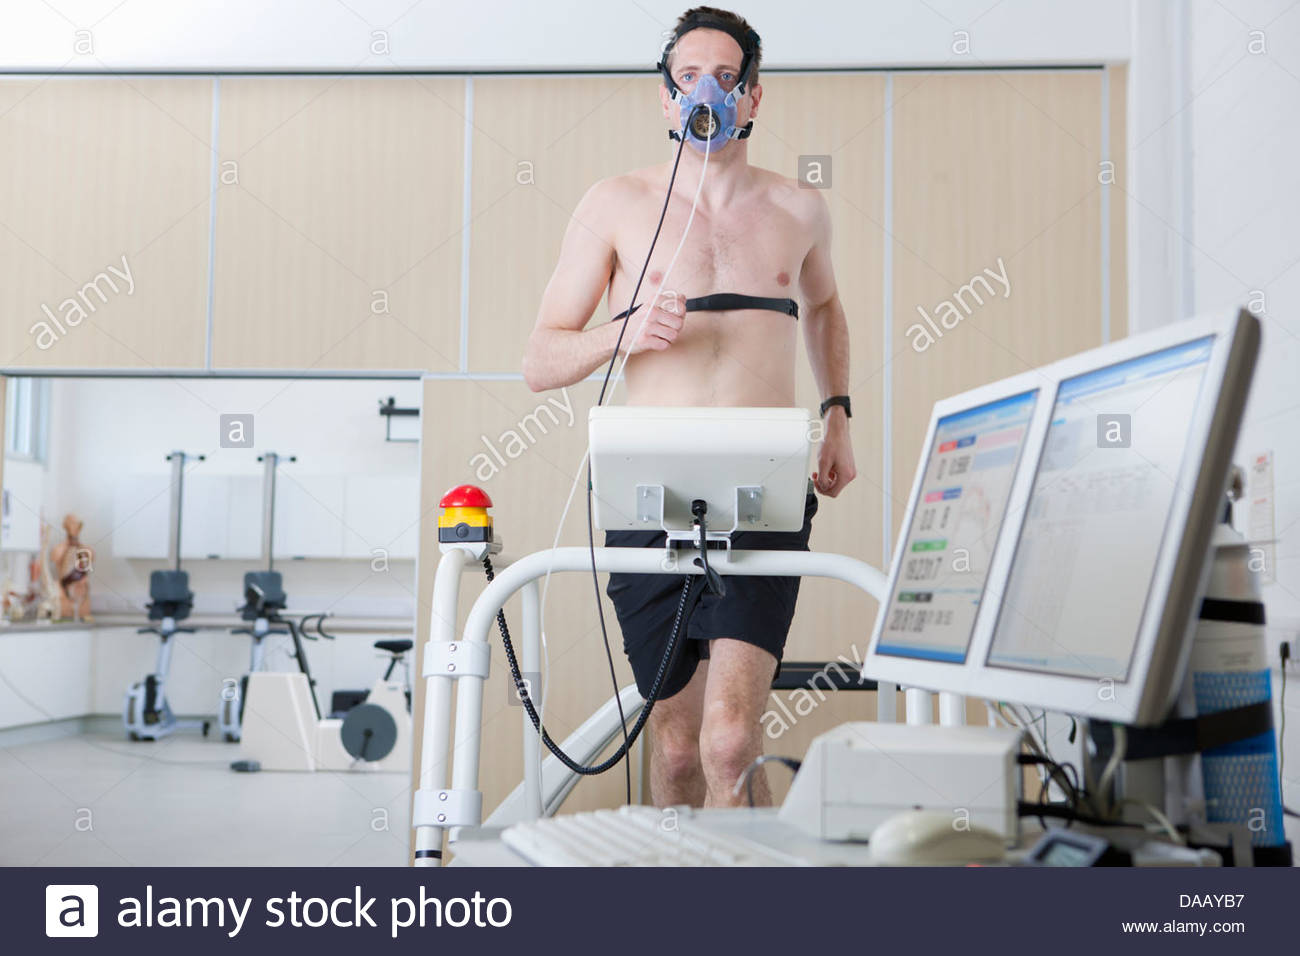 Runner avec masque sur tapis roulant in sports science laboratory Photo Stock